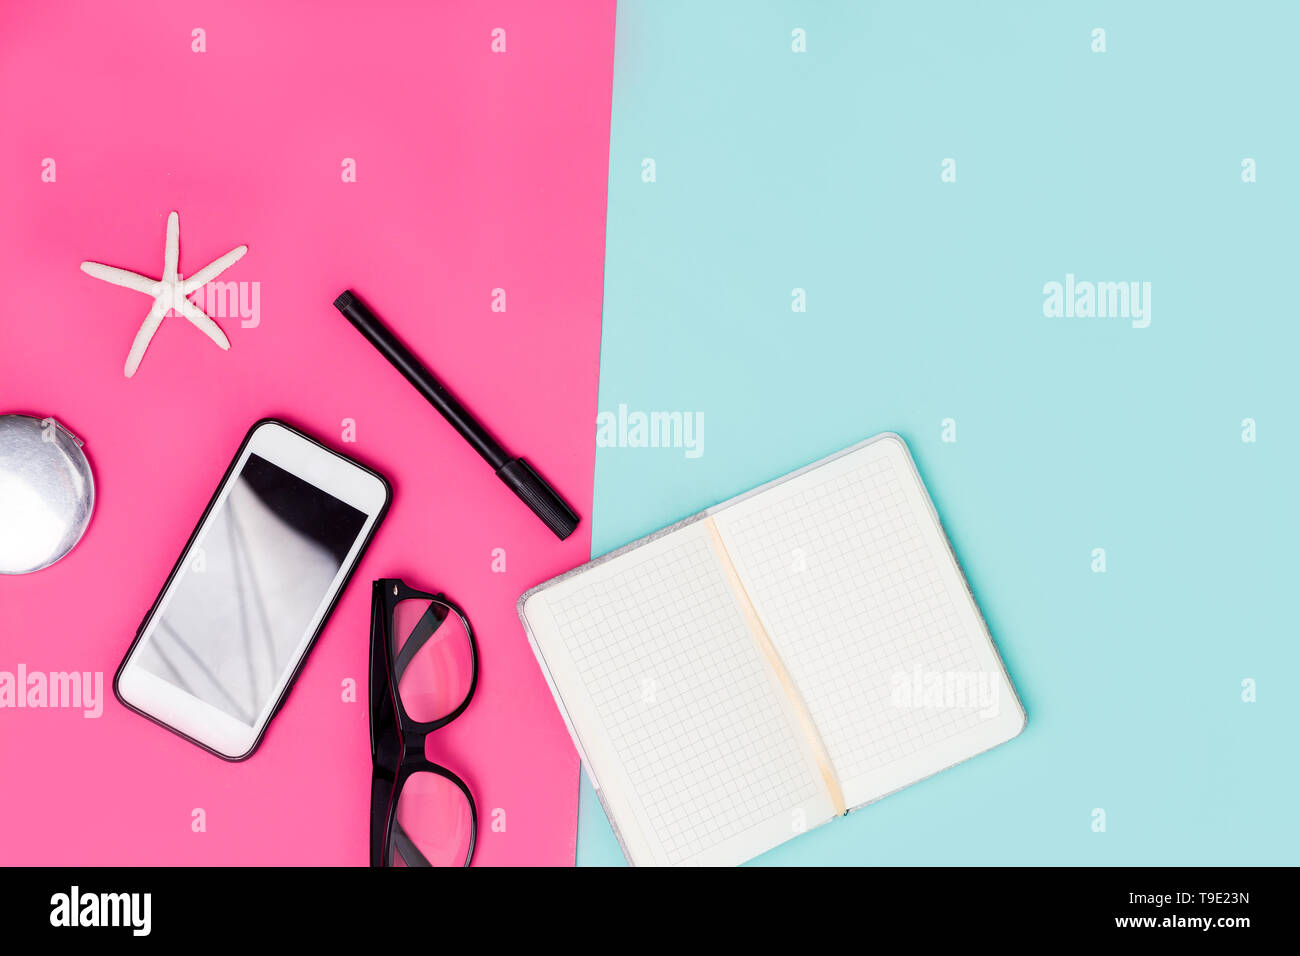 Close up office desk with stationery, glasses and smartphone. Spring pink and pastel blue background with womens work accessories - Stock Image